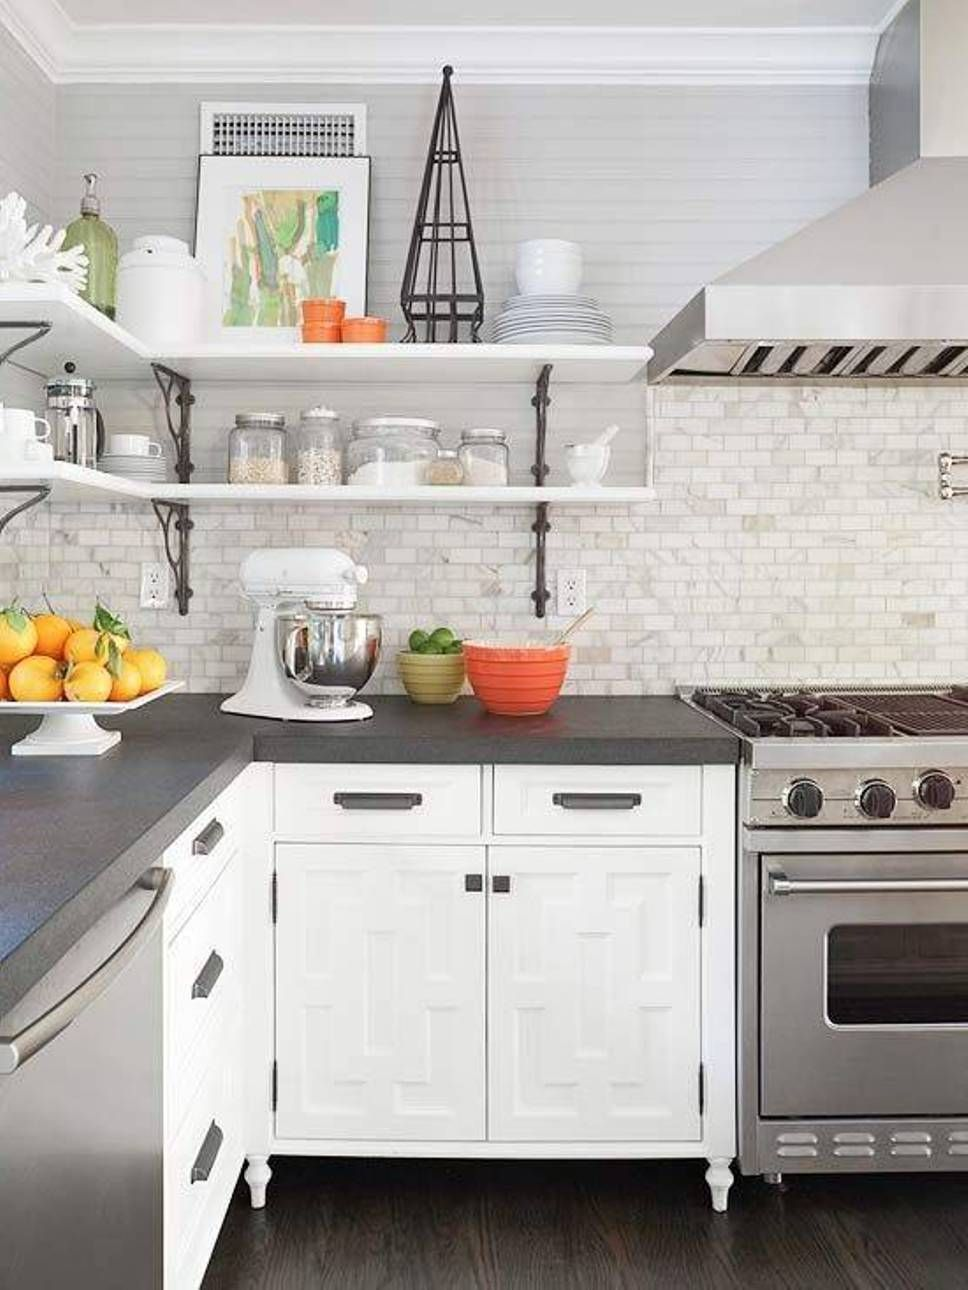 White Kitchen Grey Countertop grey in home decor: passing trend or here to stay? | grey